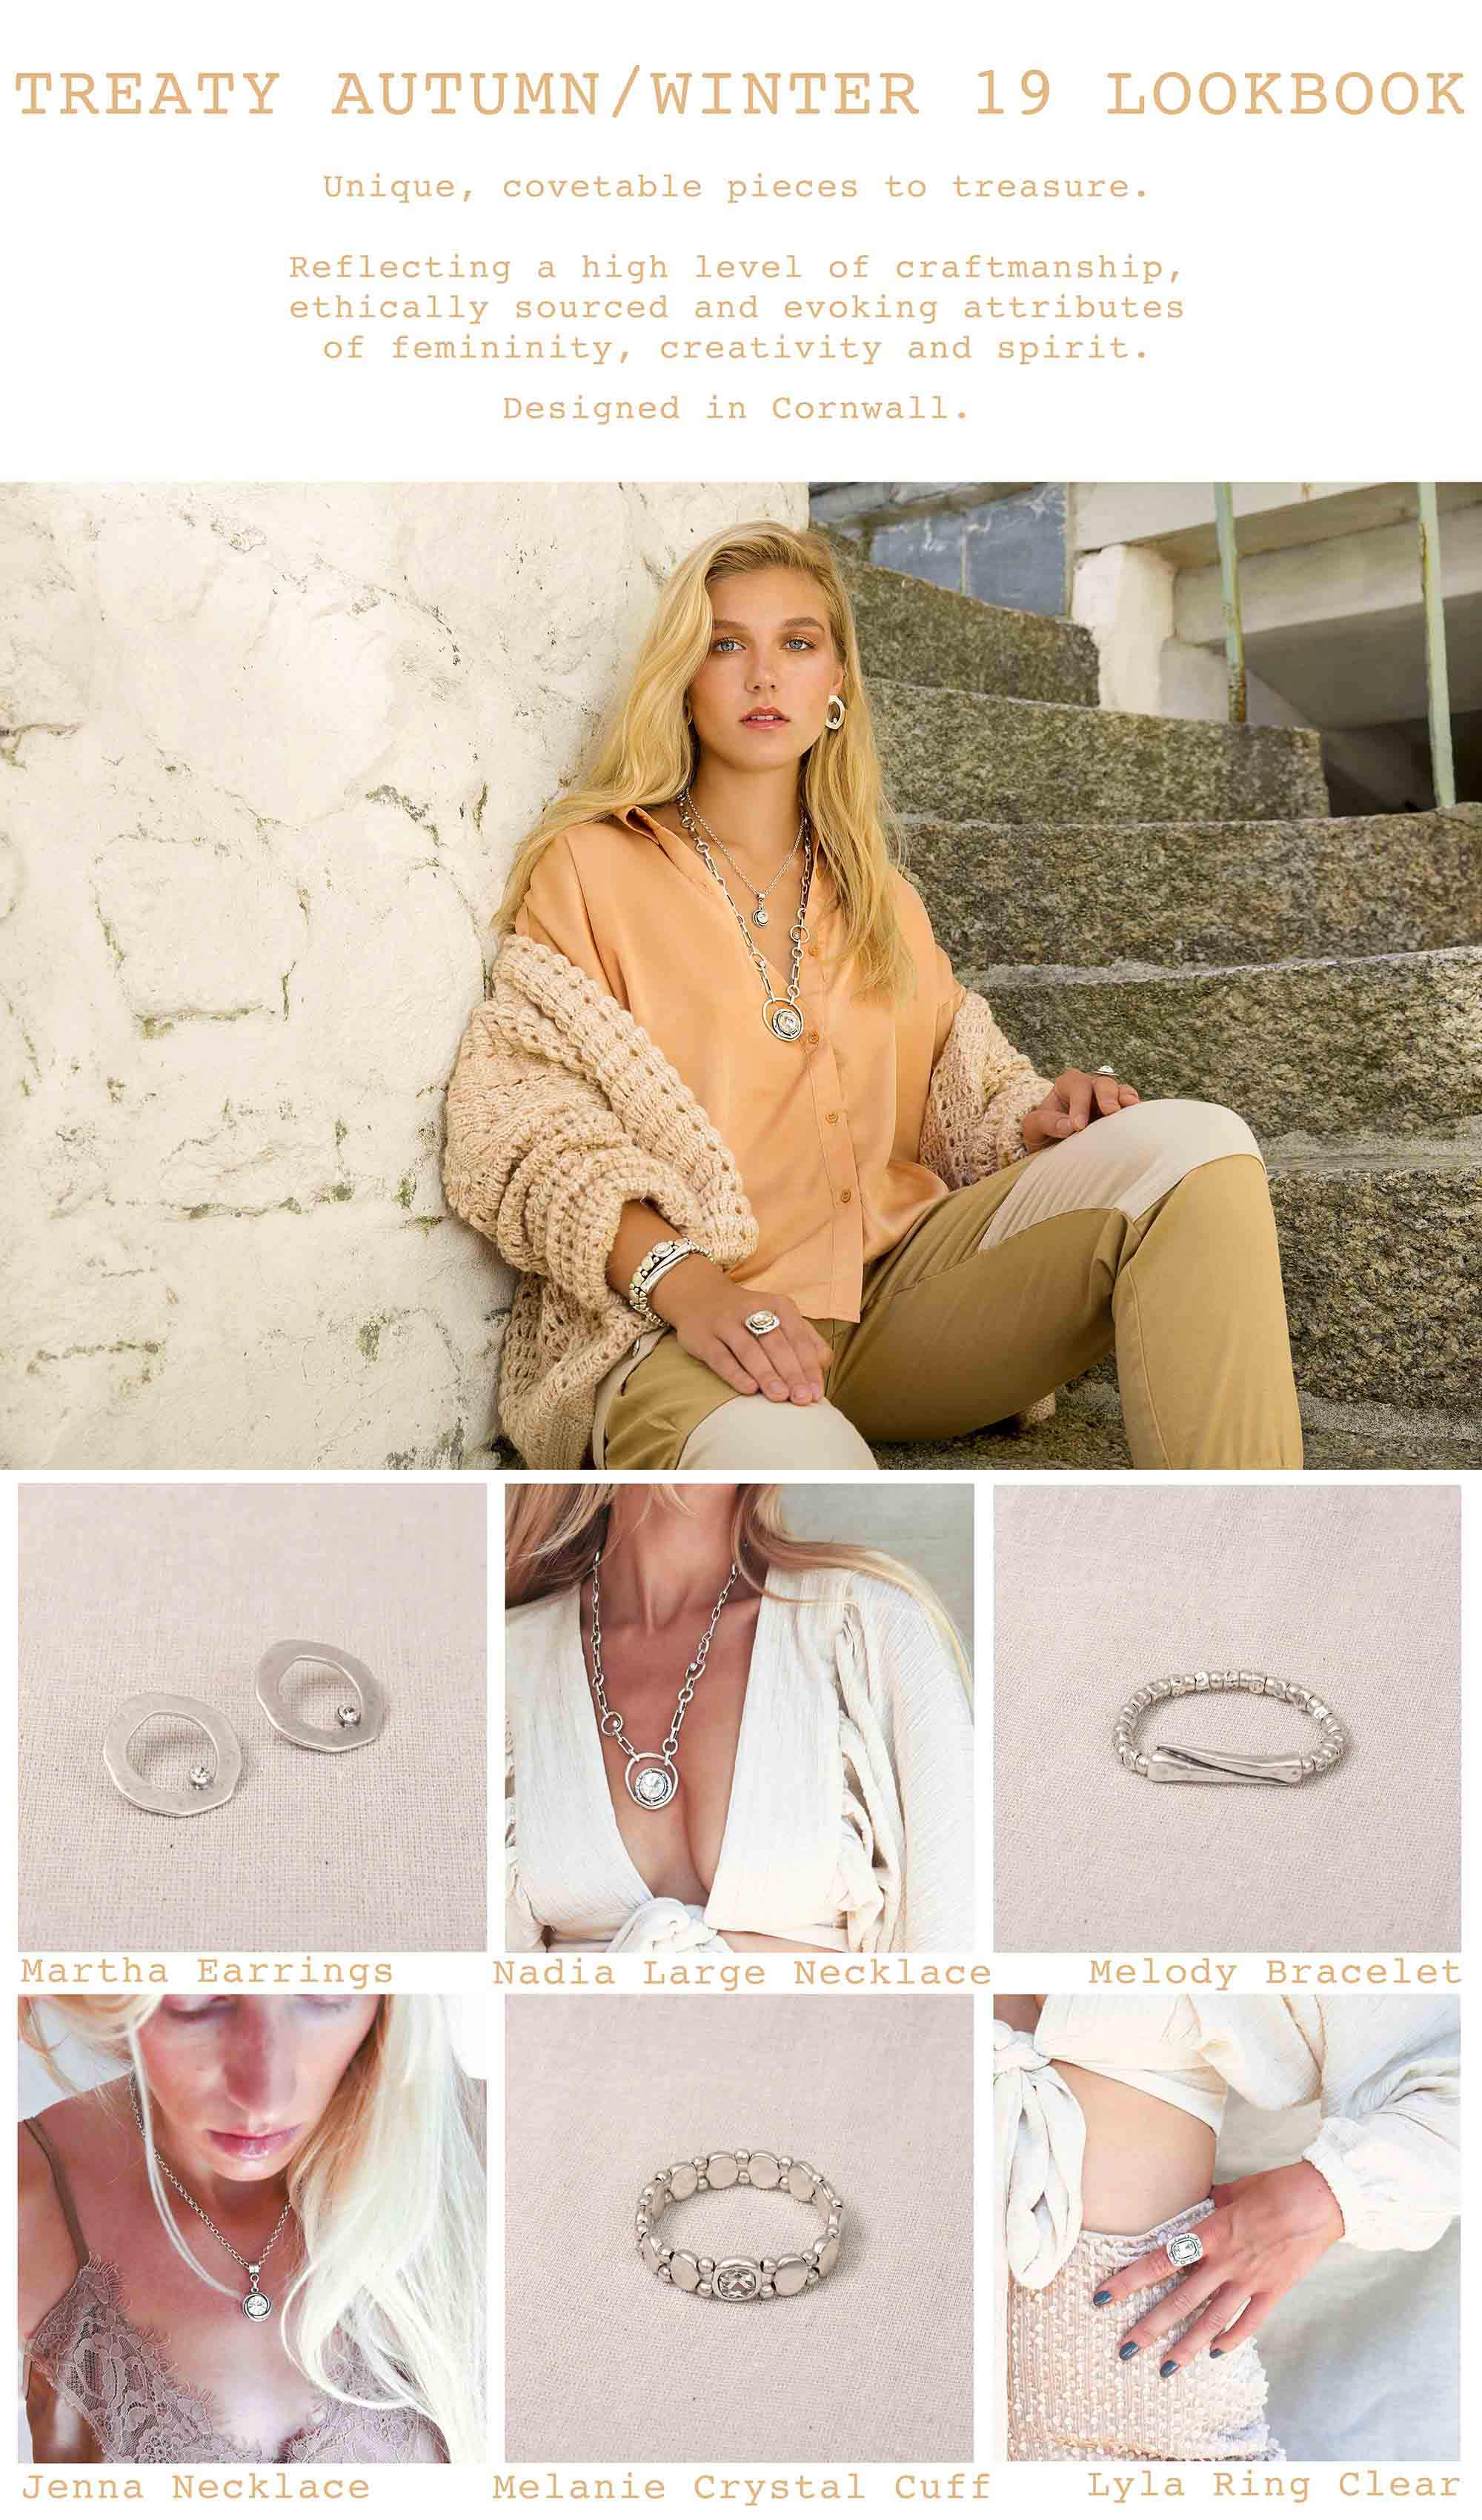 Treaty jewellery, fashion statement necklaces, earrings, rings, bracelets, autumn winter collection campaign 19.